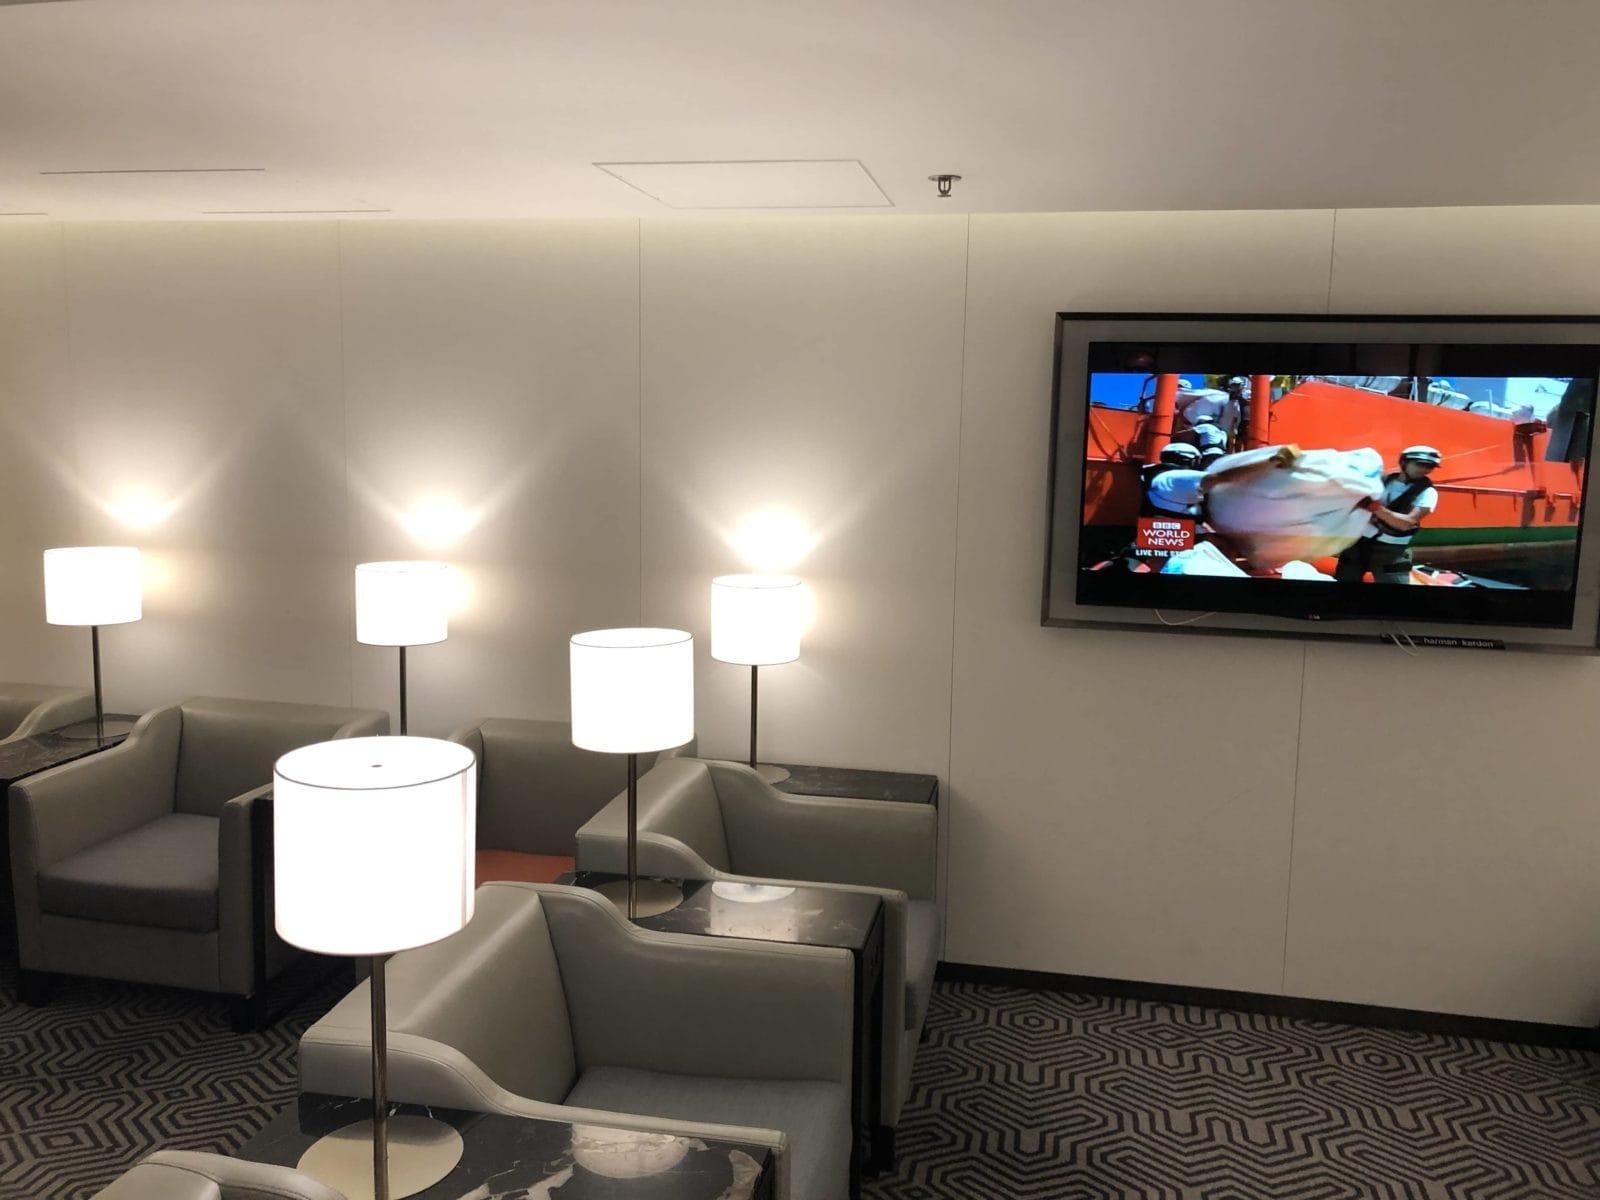 Singapore Airlines SilverKris Lounge Hong Kong Sessel Fernseher